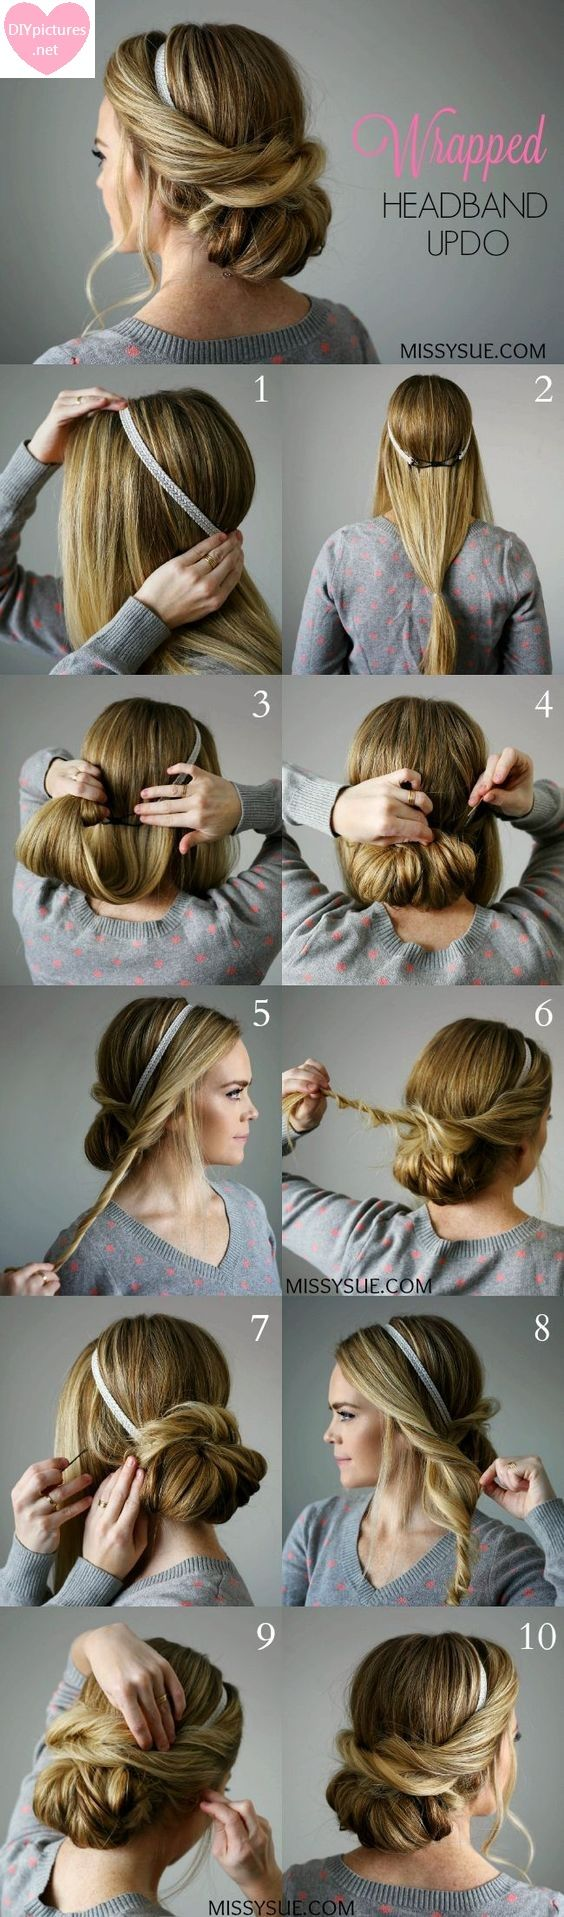 Peinados peinados pinterest updo your hair and headband updo